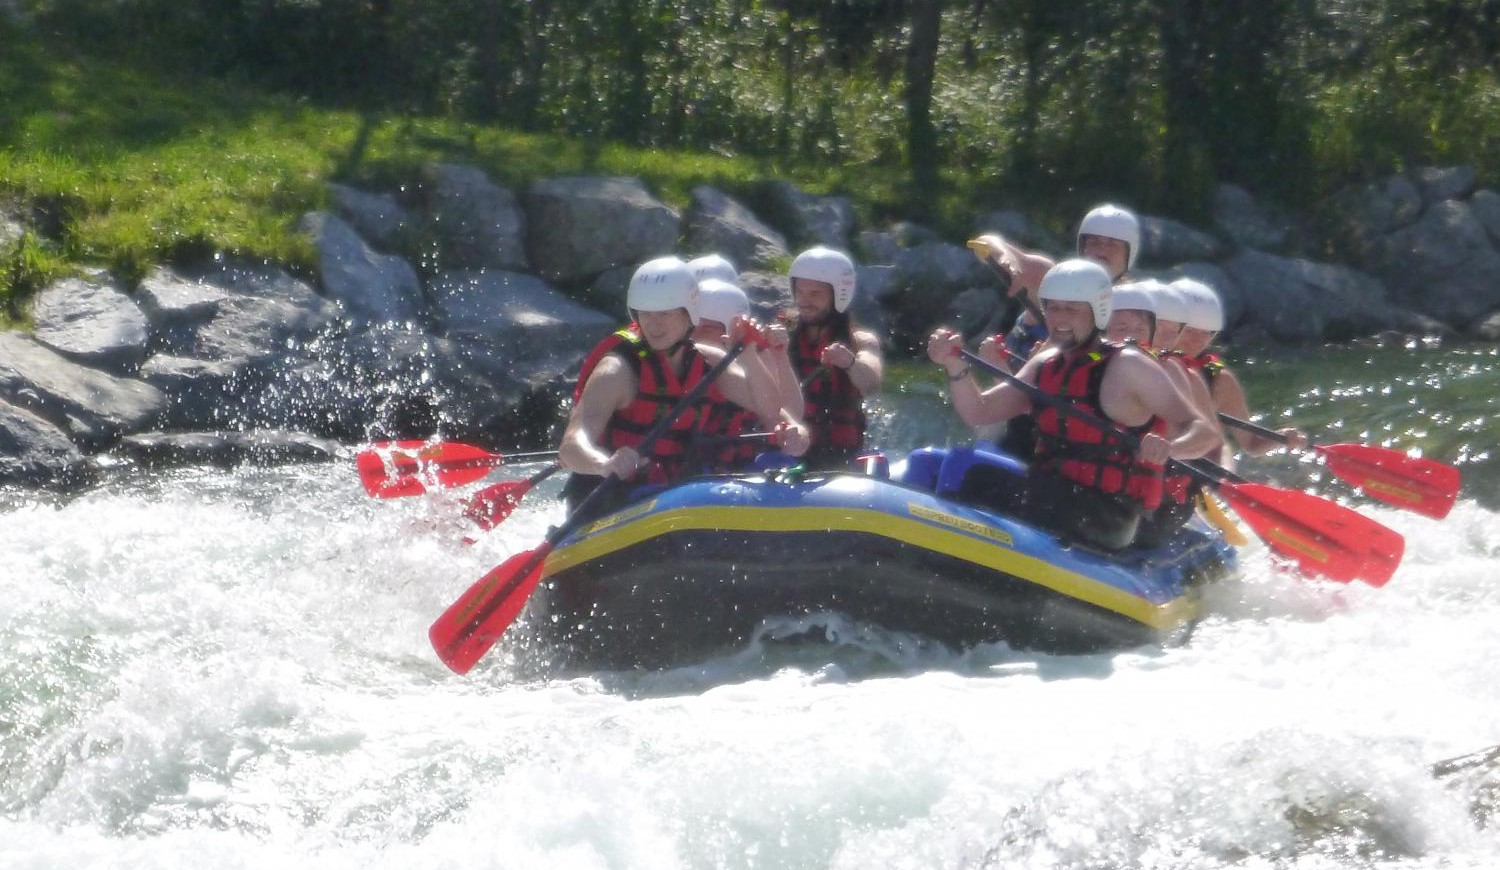 Actioncamps Canyoning Outdoor-Erlebnisse und Survivaltraining in Lenggries ✔